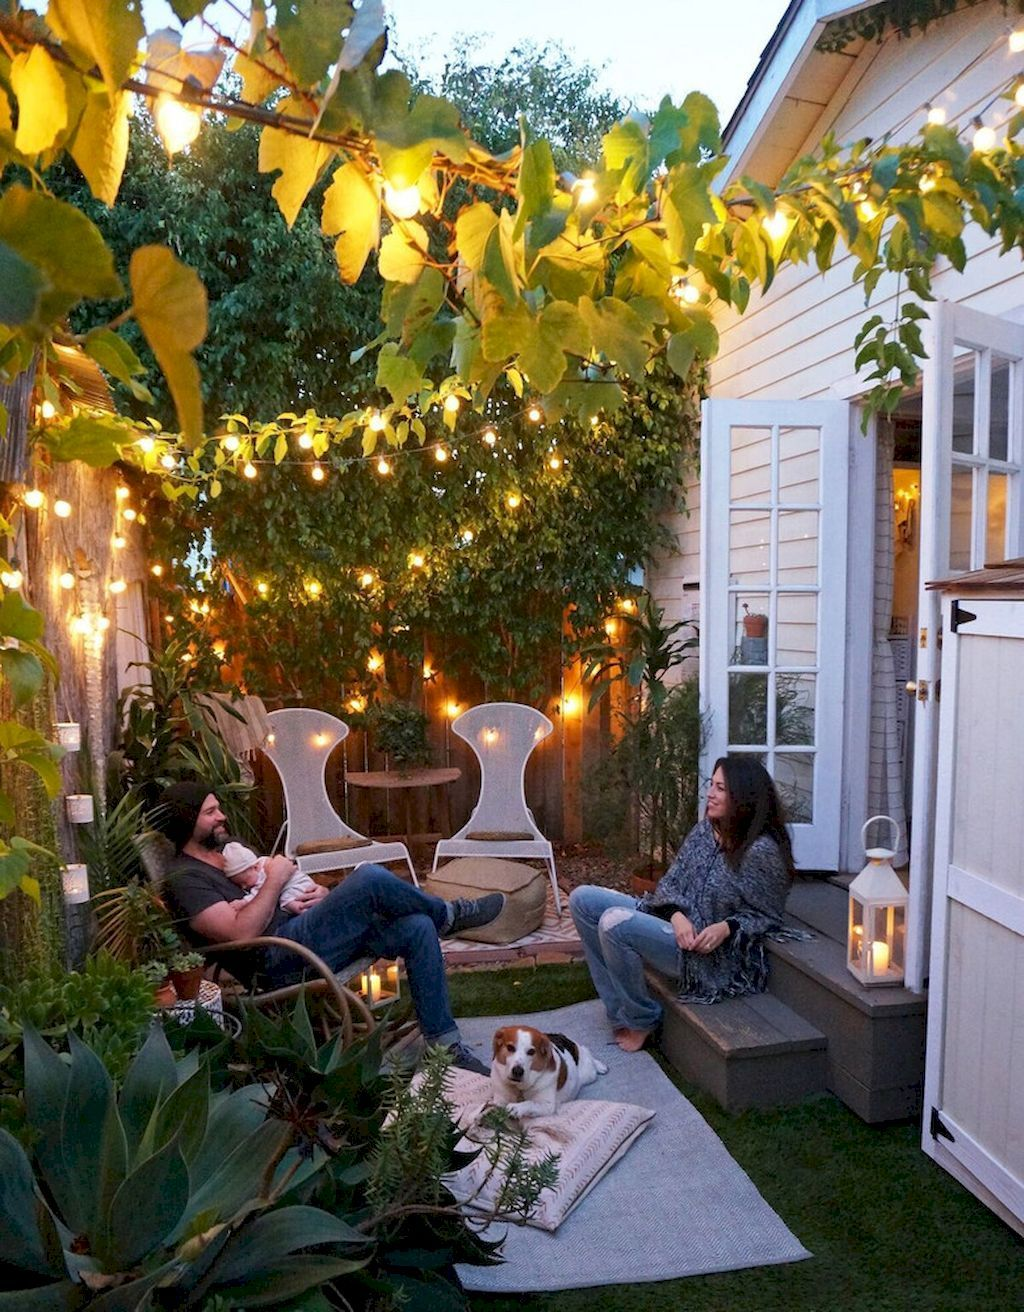 48 Inspiring Backyard Lighting Ideas